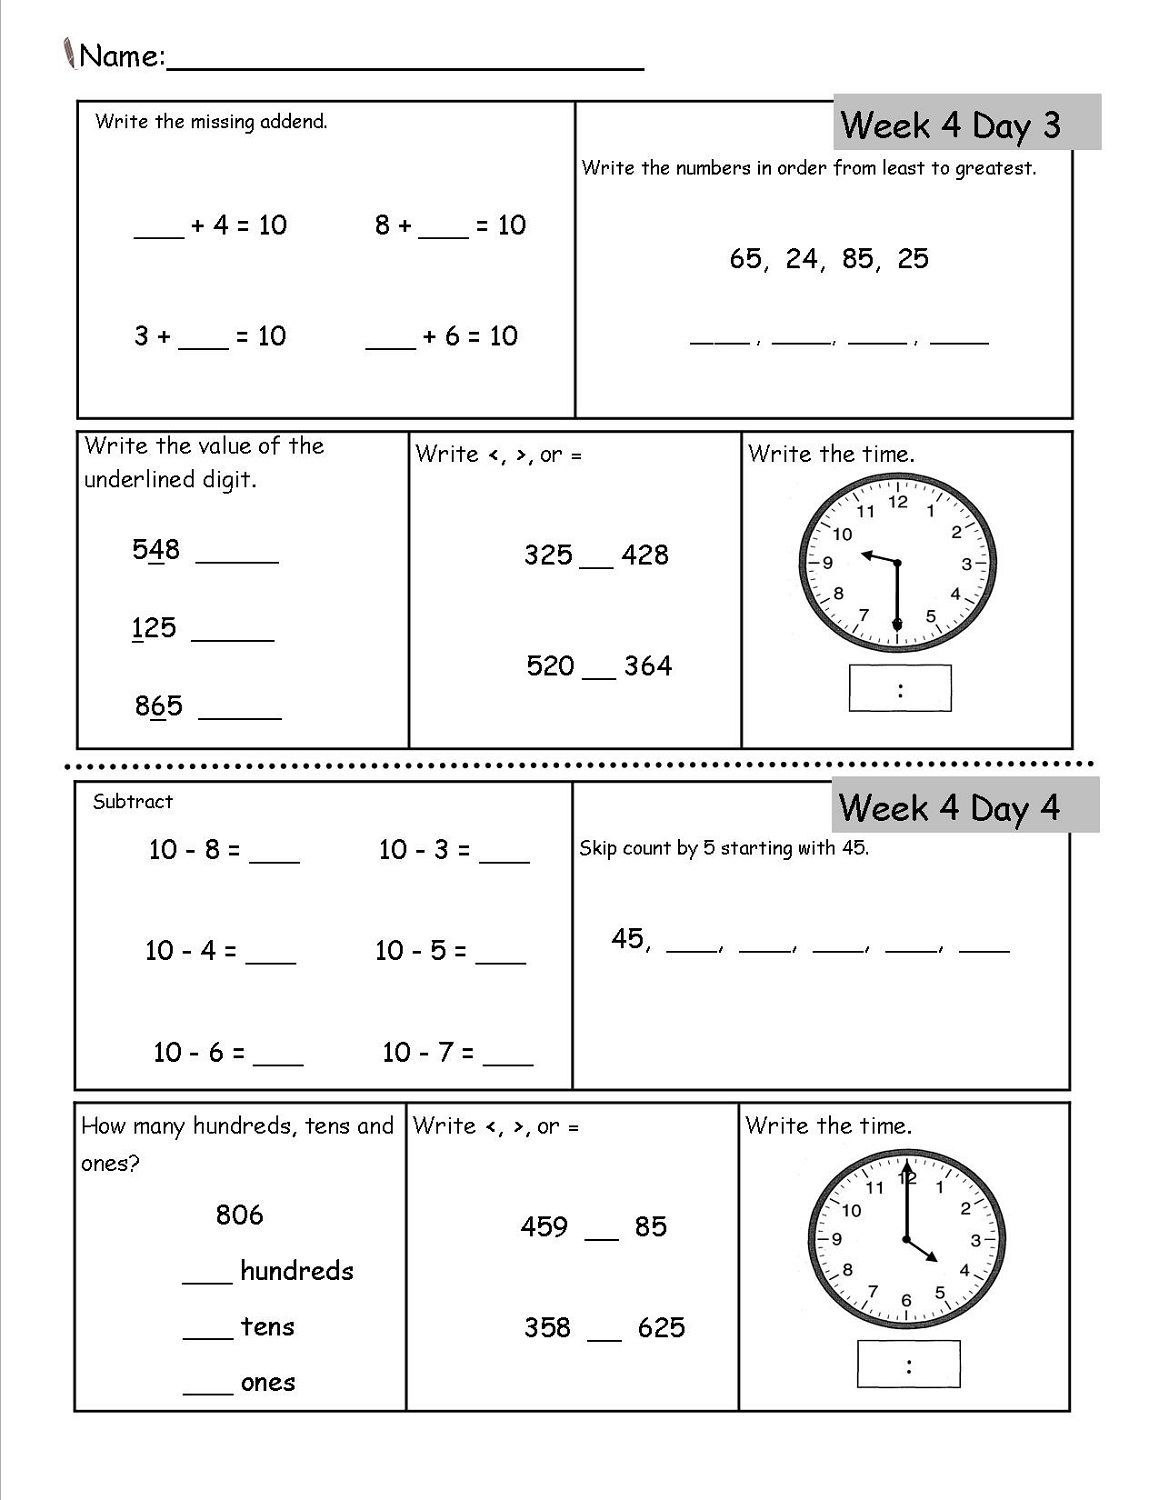 Free Homeschool Worksheets With Images